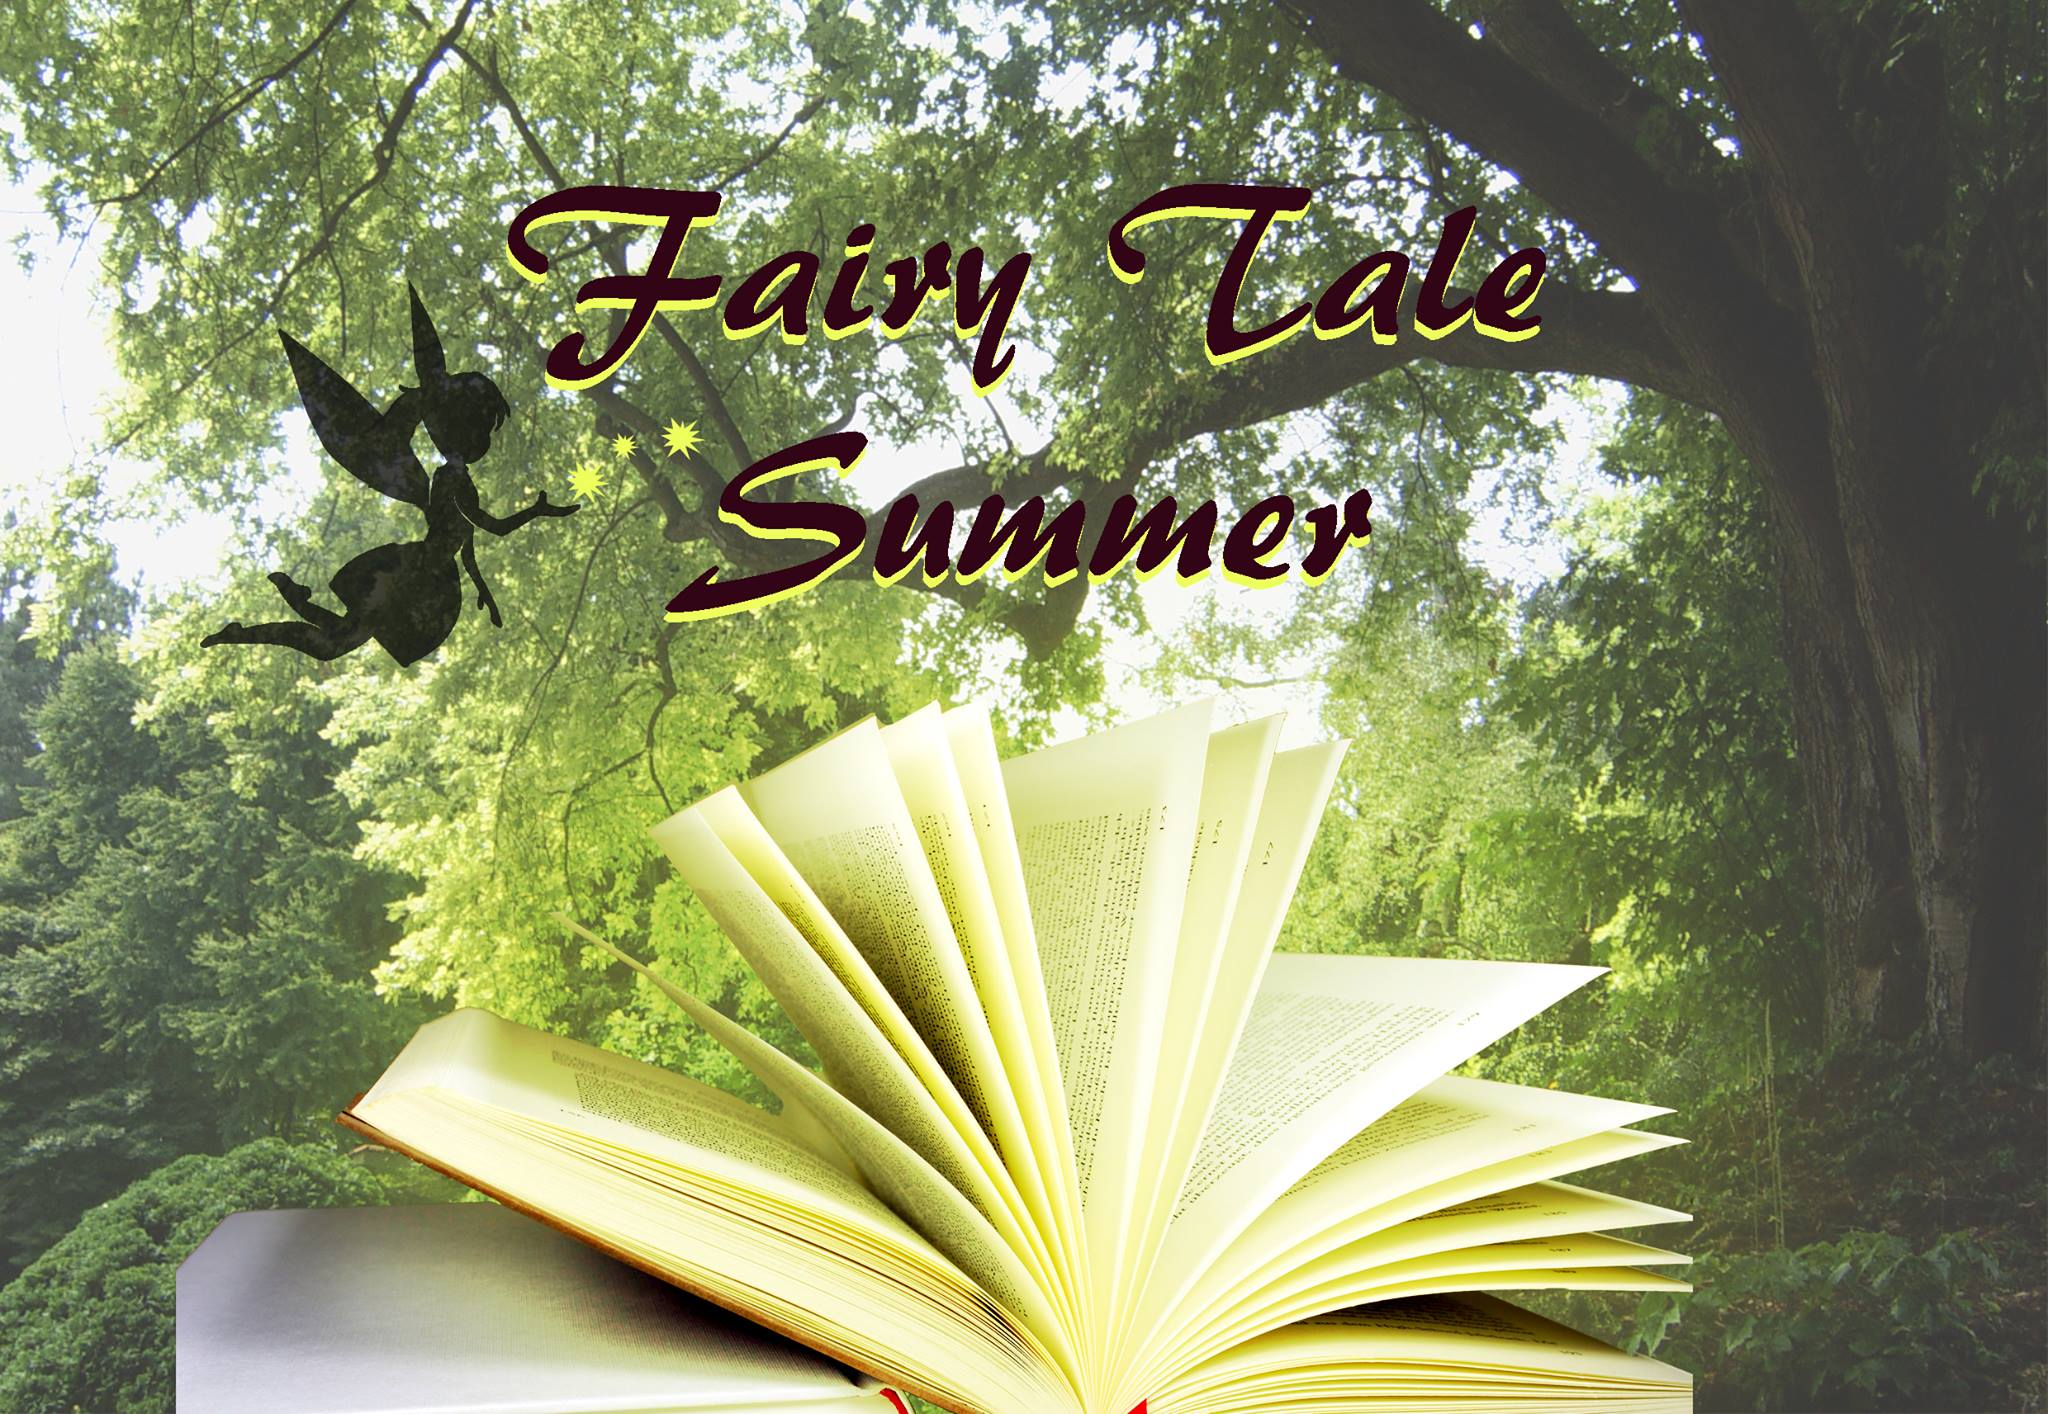 The old Fairy Tale Summer banner The shadow of a fairy sprinkling sparkle onto an open book and the byline Fairy Tale Summer. The Background is a green forest.